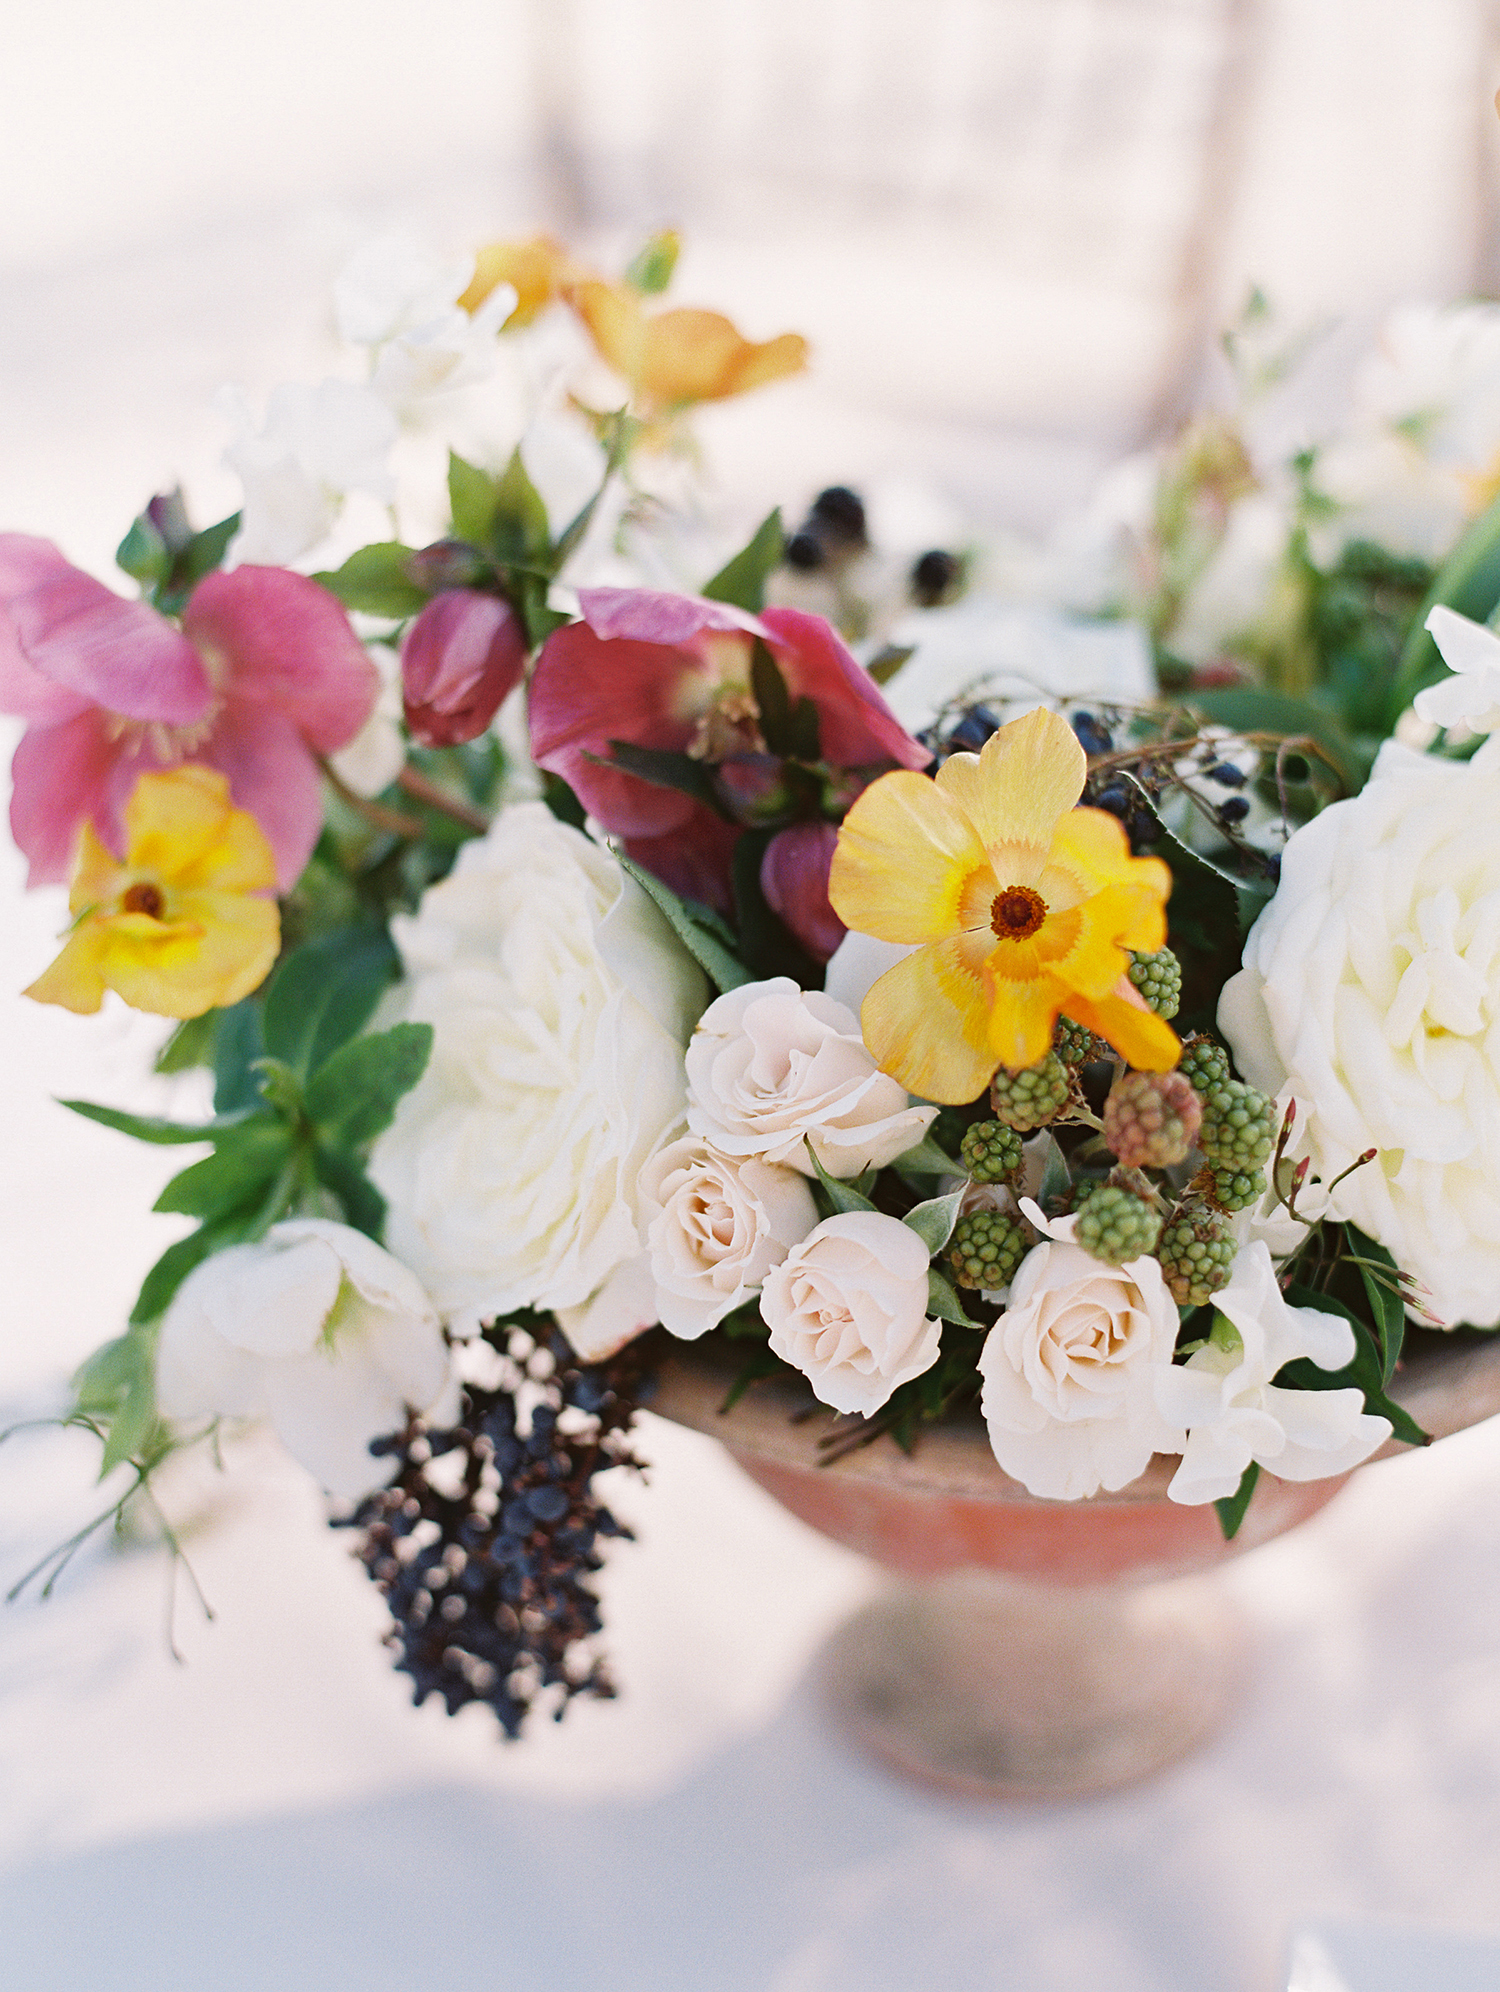 When to Finalize Your Wedding Flowers